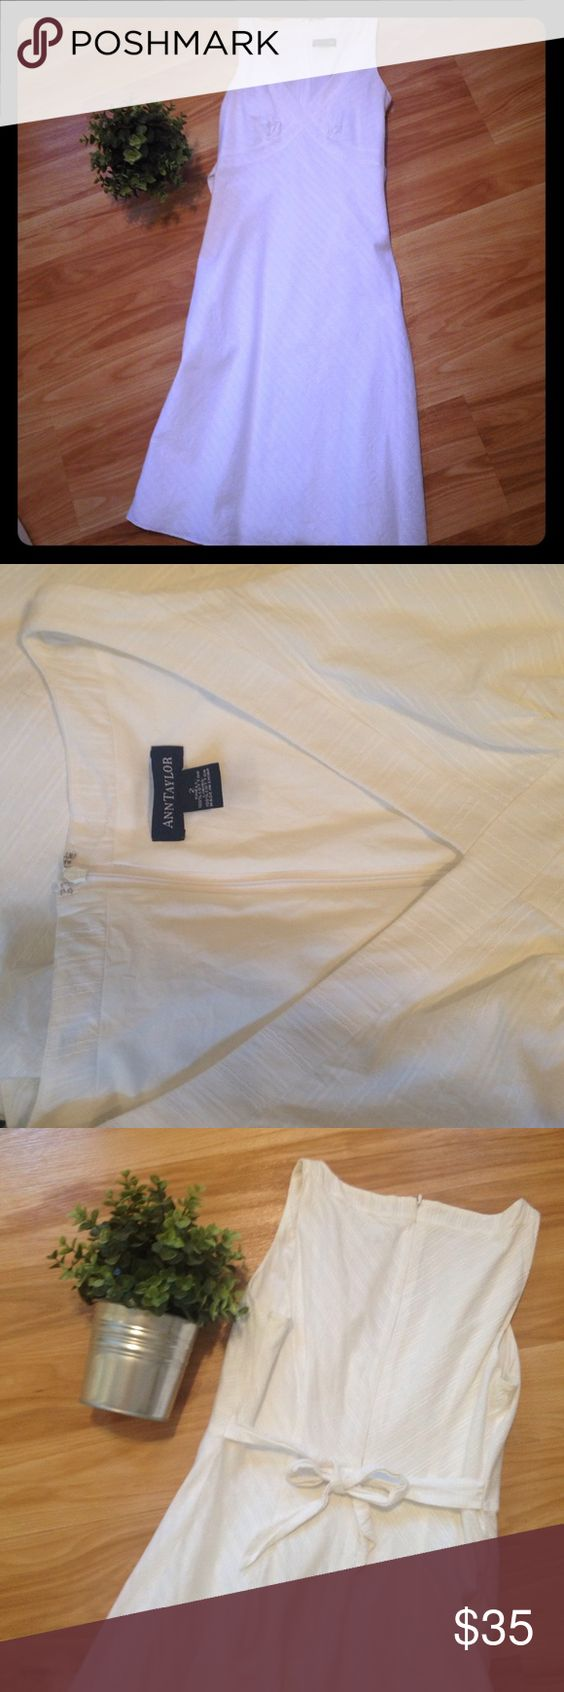 Ann Taylor white cotton dress Beautiful white cotton Ann Taylor Dress. Size 2. V- neck front. Ties at the waist in the back. Excellent condition! Ann Taylor Dresses Midi